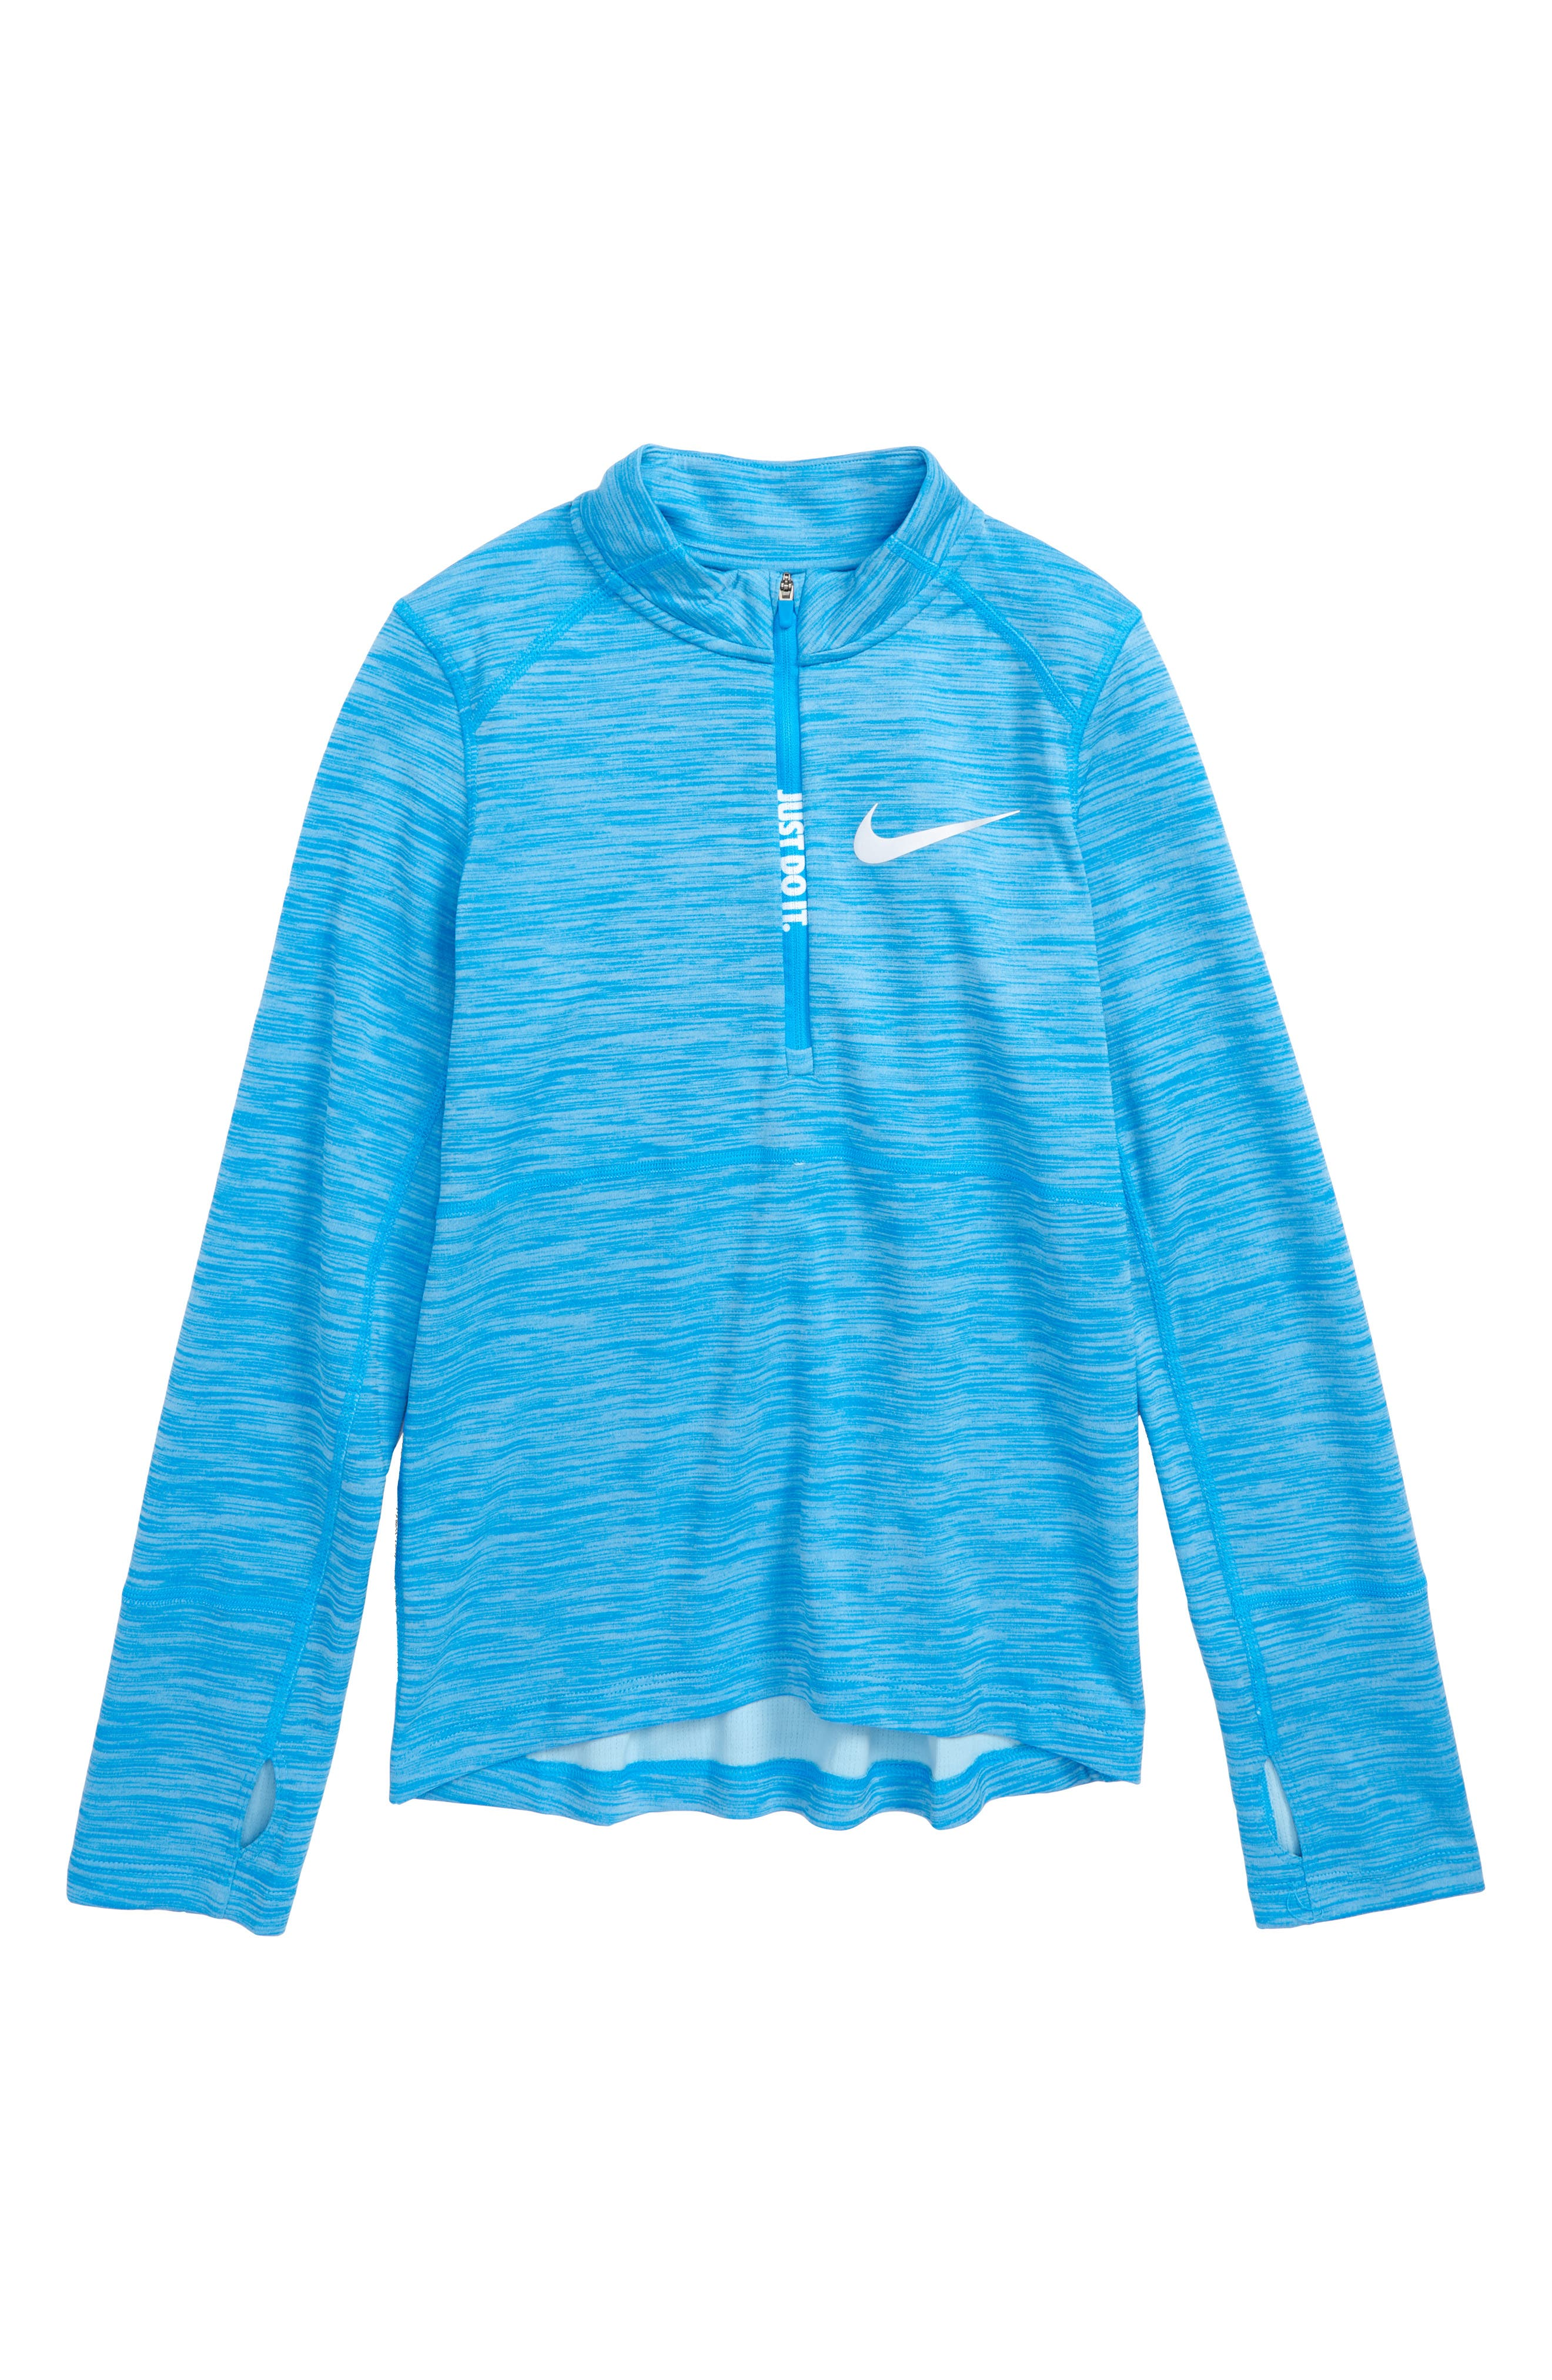 Dry Pacer Half Zip Pullover,                         Main,                         color, BLUE HERO/ BLUE CHILL